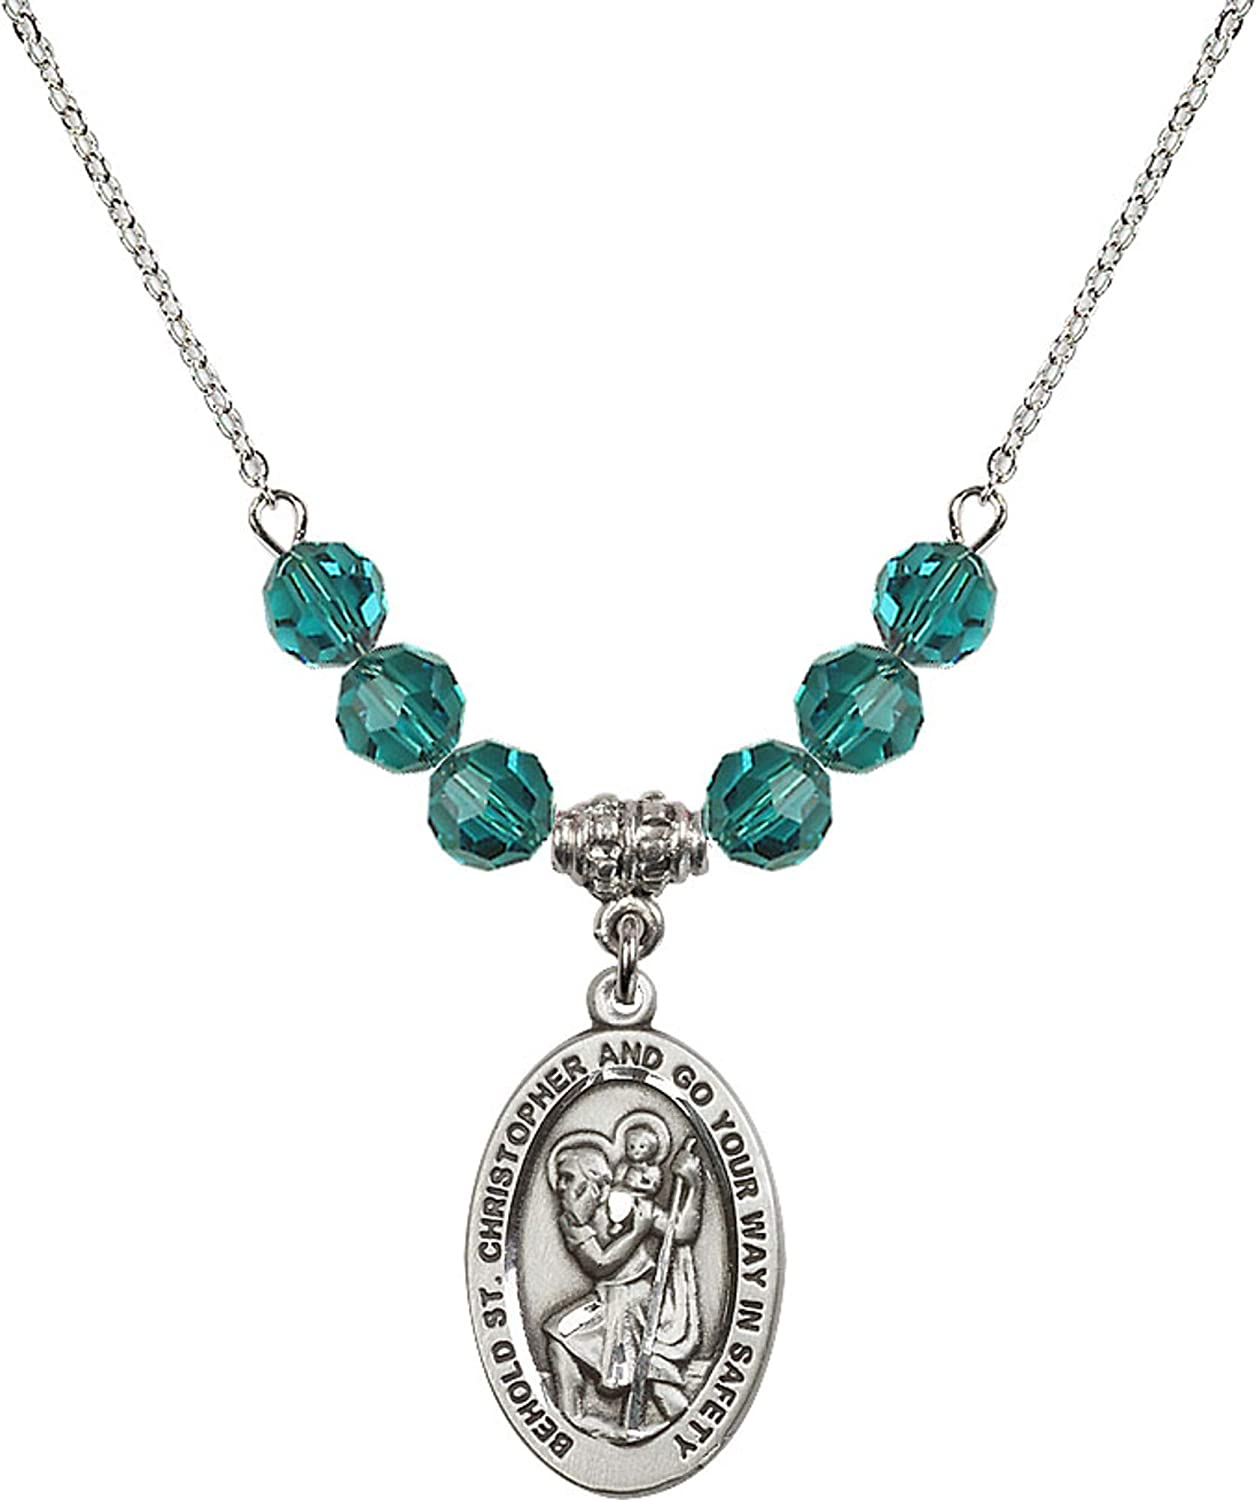 Bonyak Jewelry 18 Inch Rhodium Plated Necklace w// 6mm Blue December Birth Month Stone Beads and Saint Christopher Charm